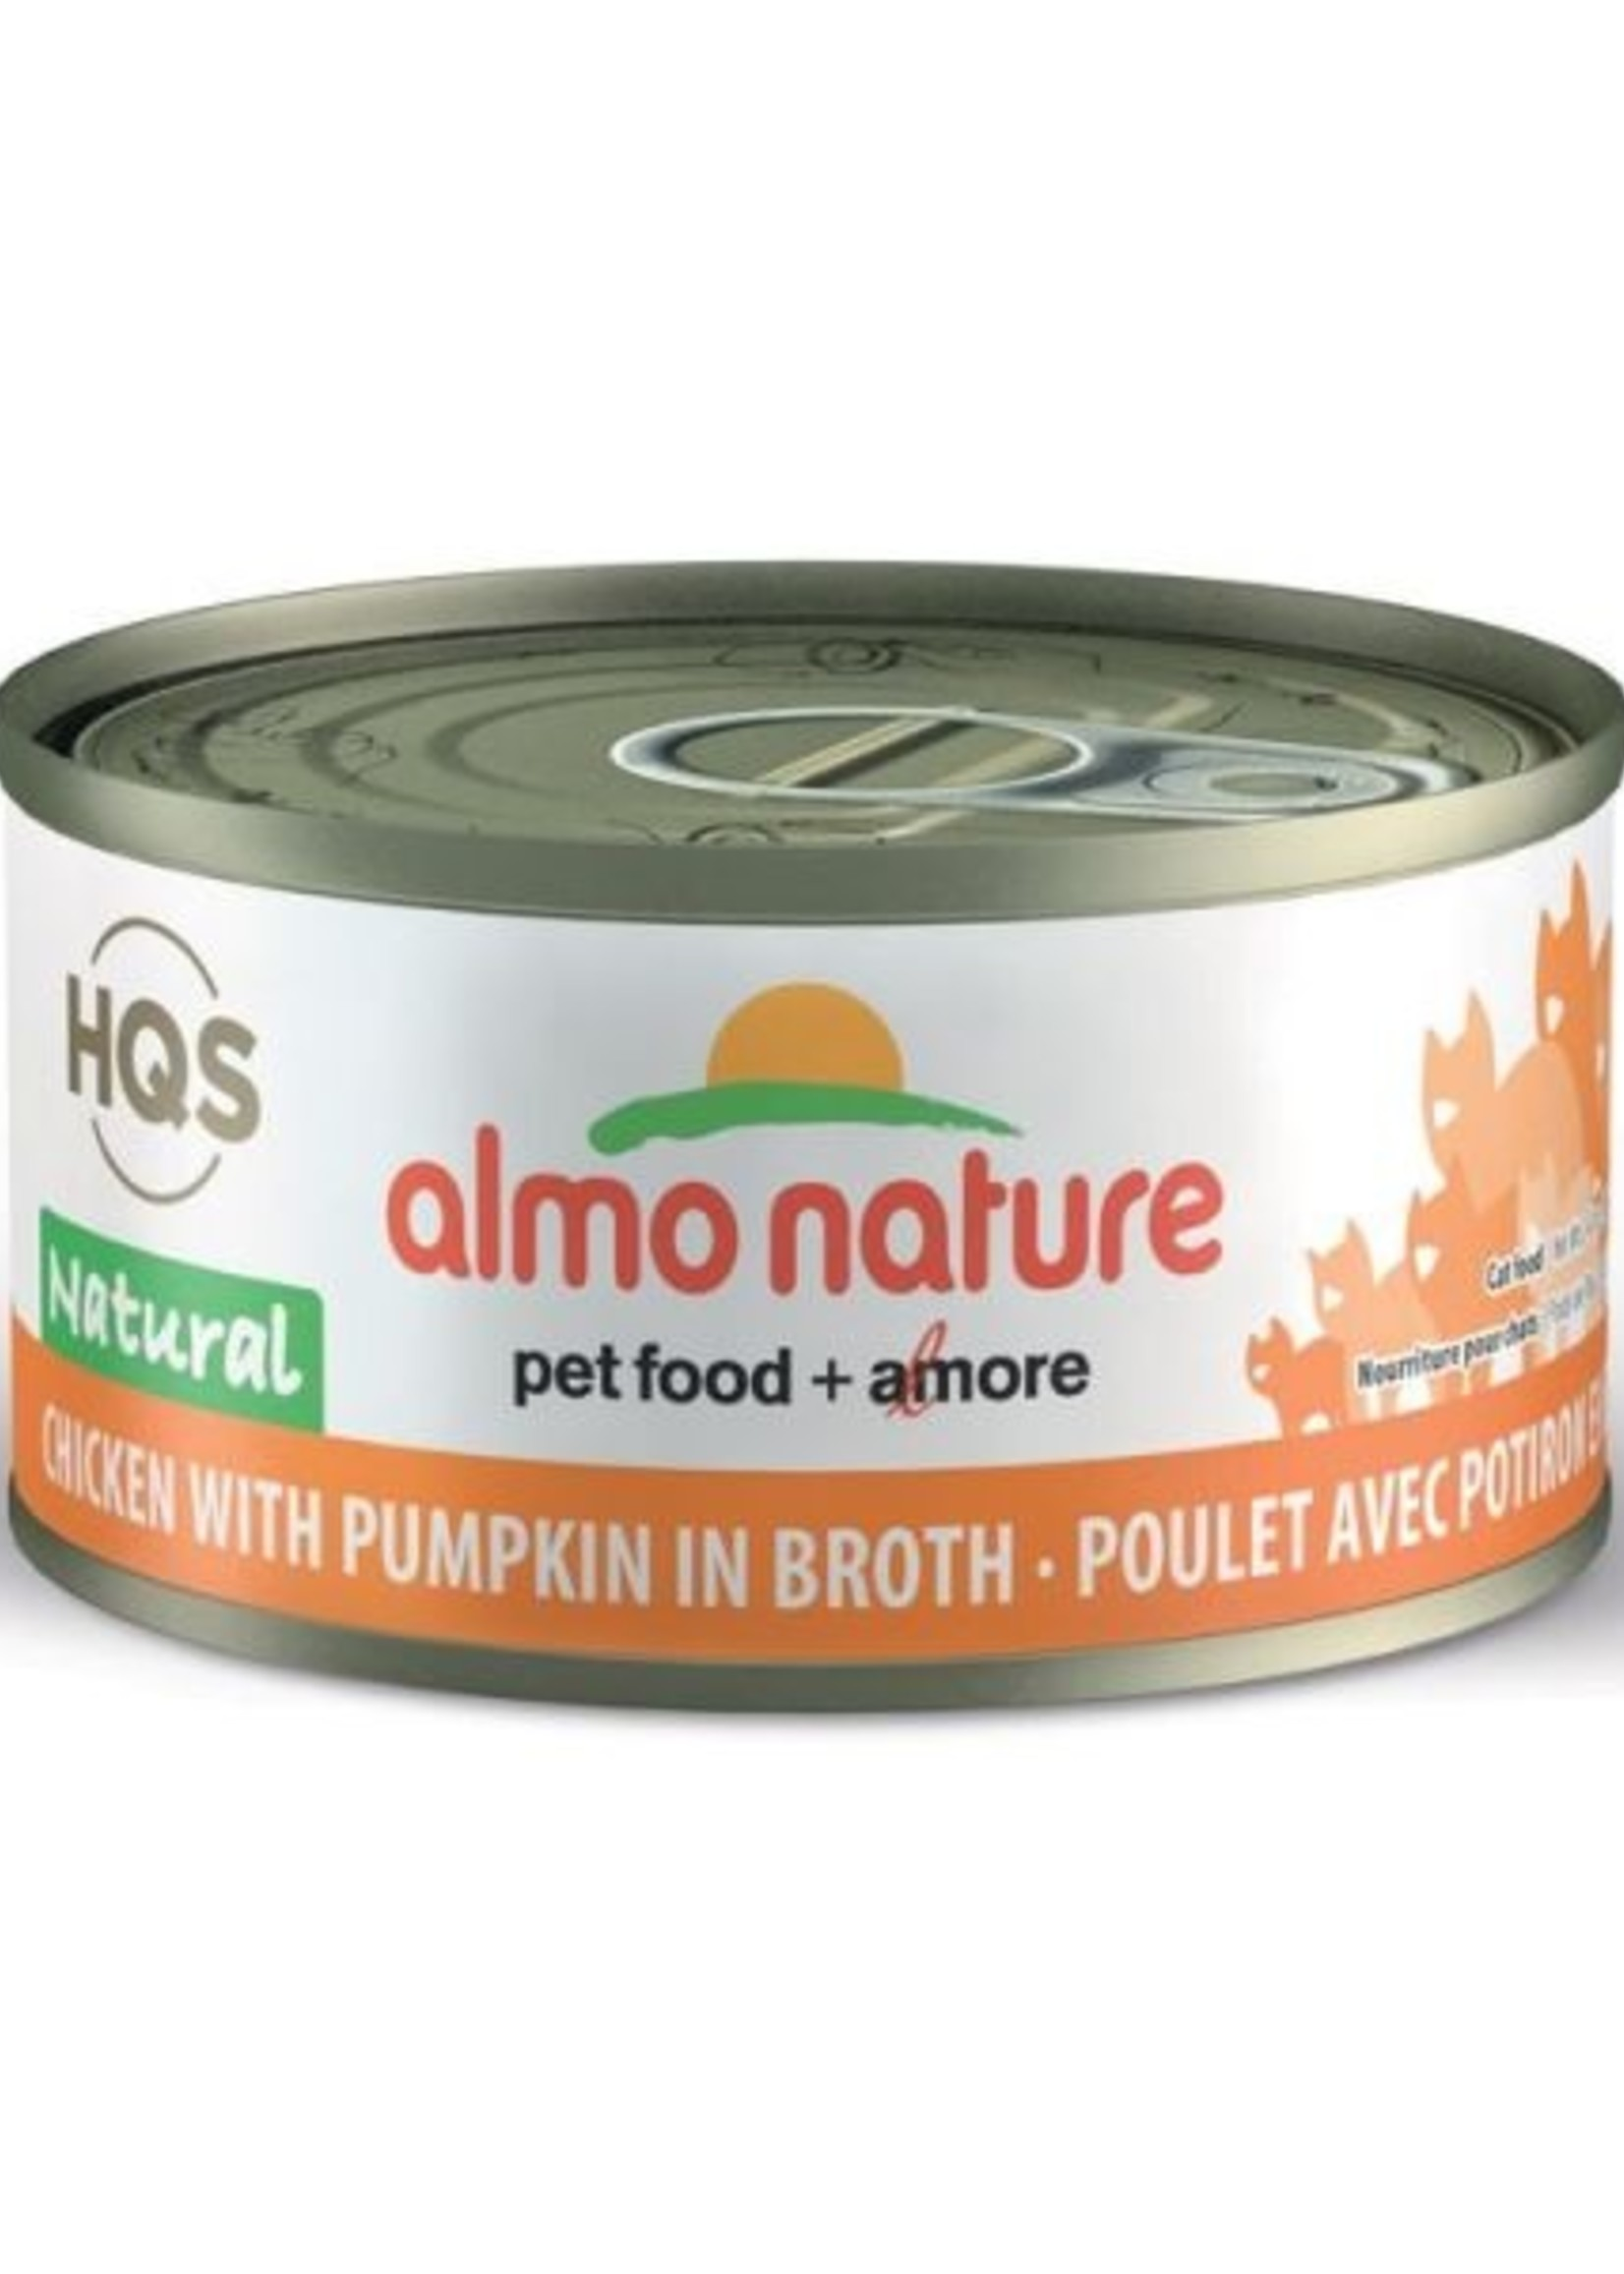 Almo Nature© Almo Nature HQS Natural Chicken with Pumpkin in Broth 70g